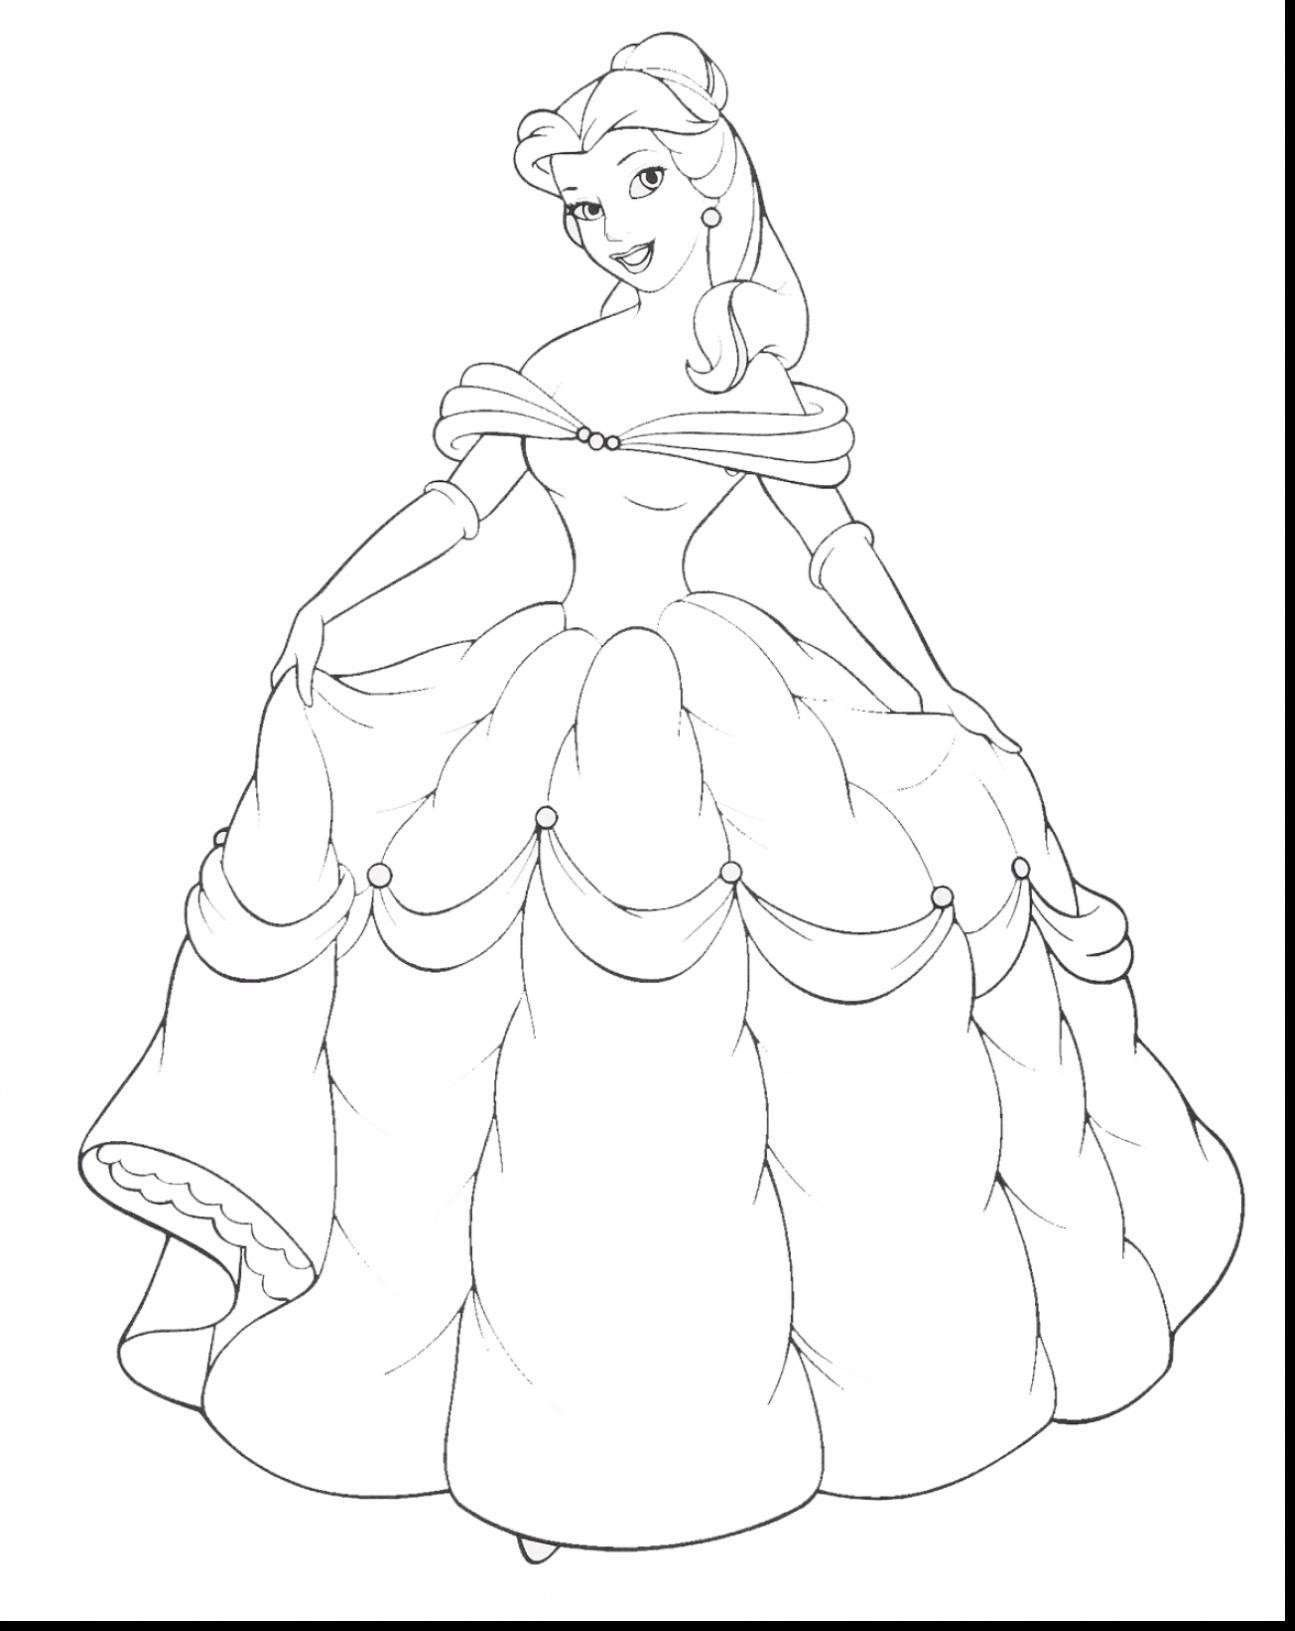 Disney Princess Dress Up Coloring Pages Through The Thousand Pictures Online With Belle Coloring Pages Princess Coloring Pages Disney Princess Coloring Pages